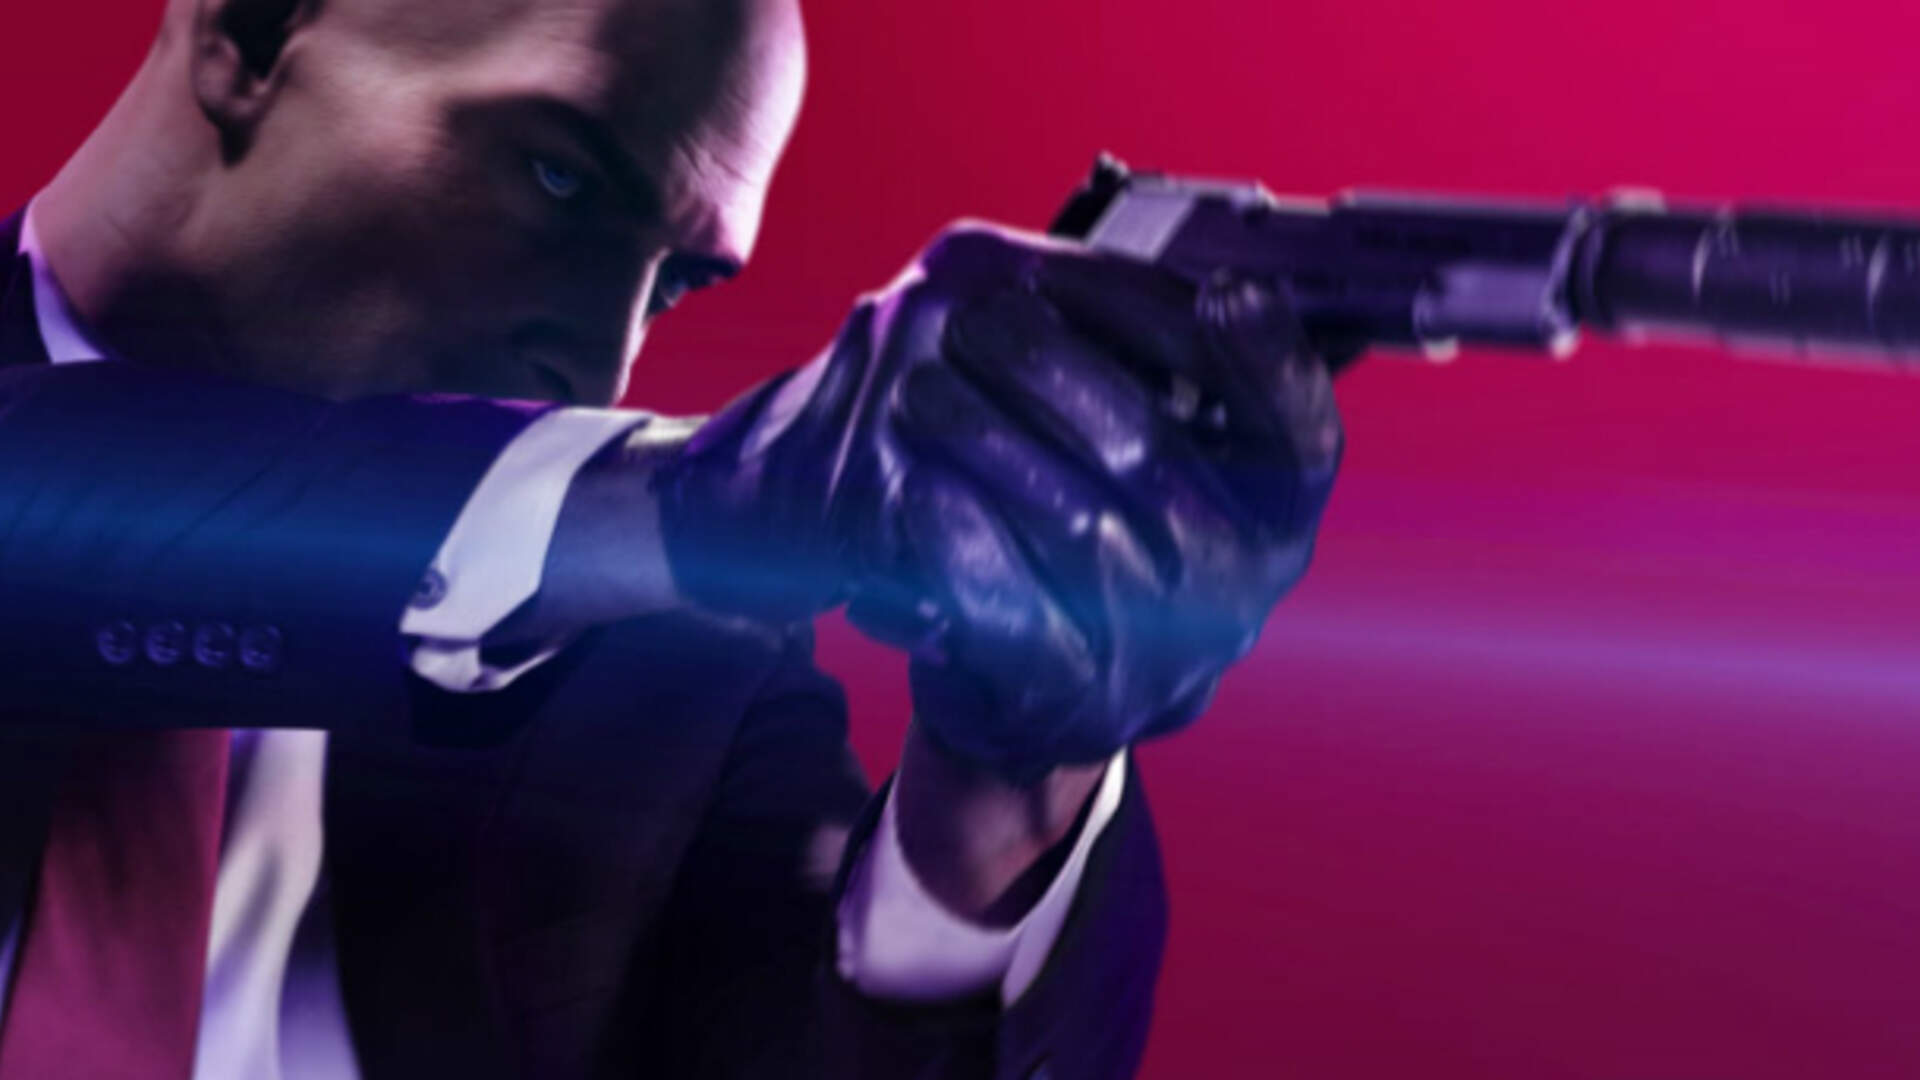 Hitman 2's Enemies are Scary Smart, Can be Alerted By Your Reflection in a Mirror